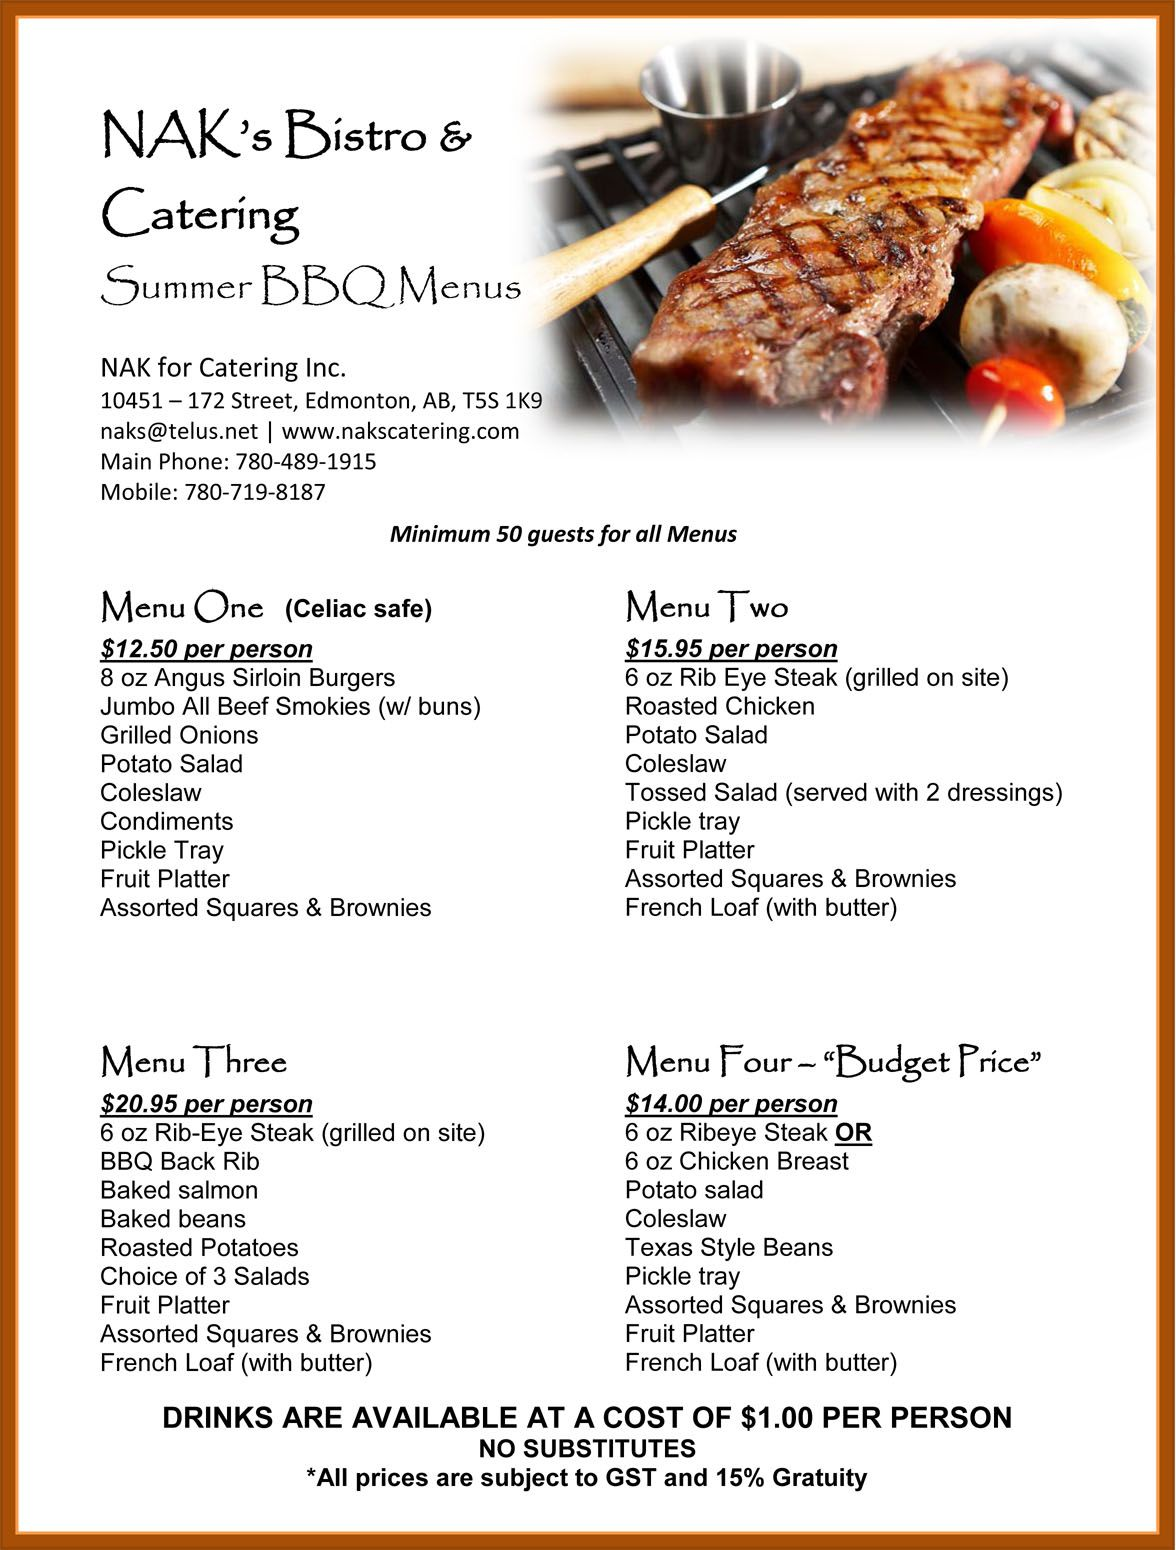 Barbecue Rehearsal Dinner. Summer BBQ Catering Menu Great